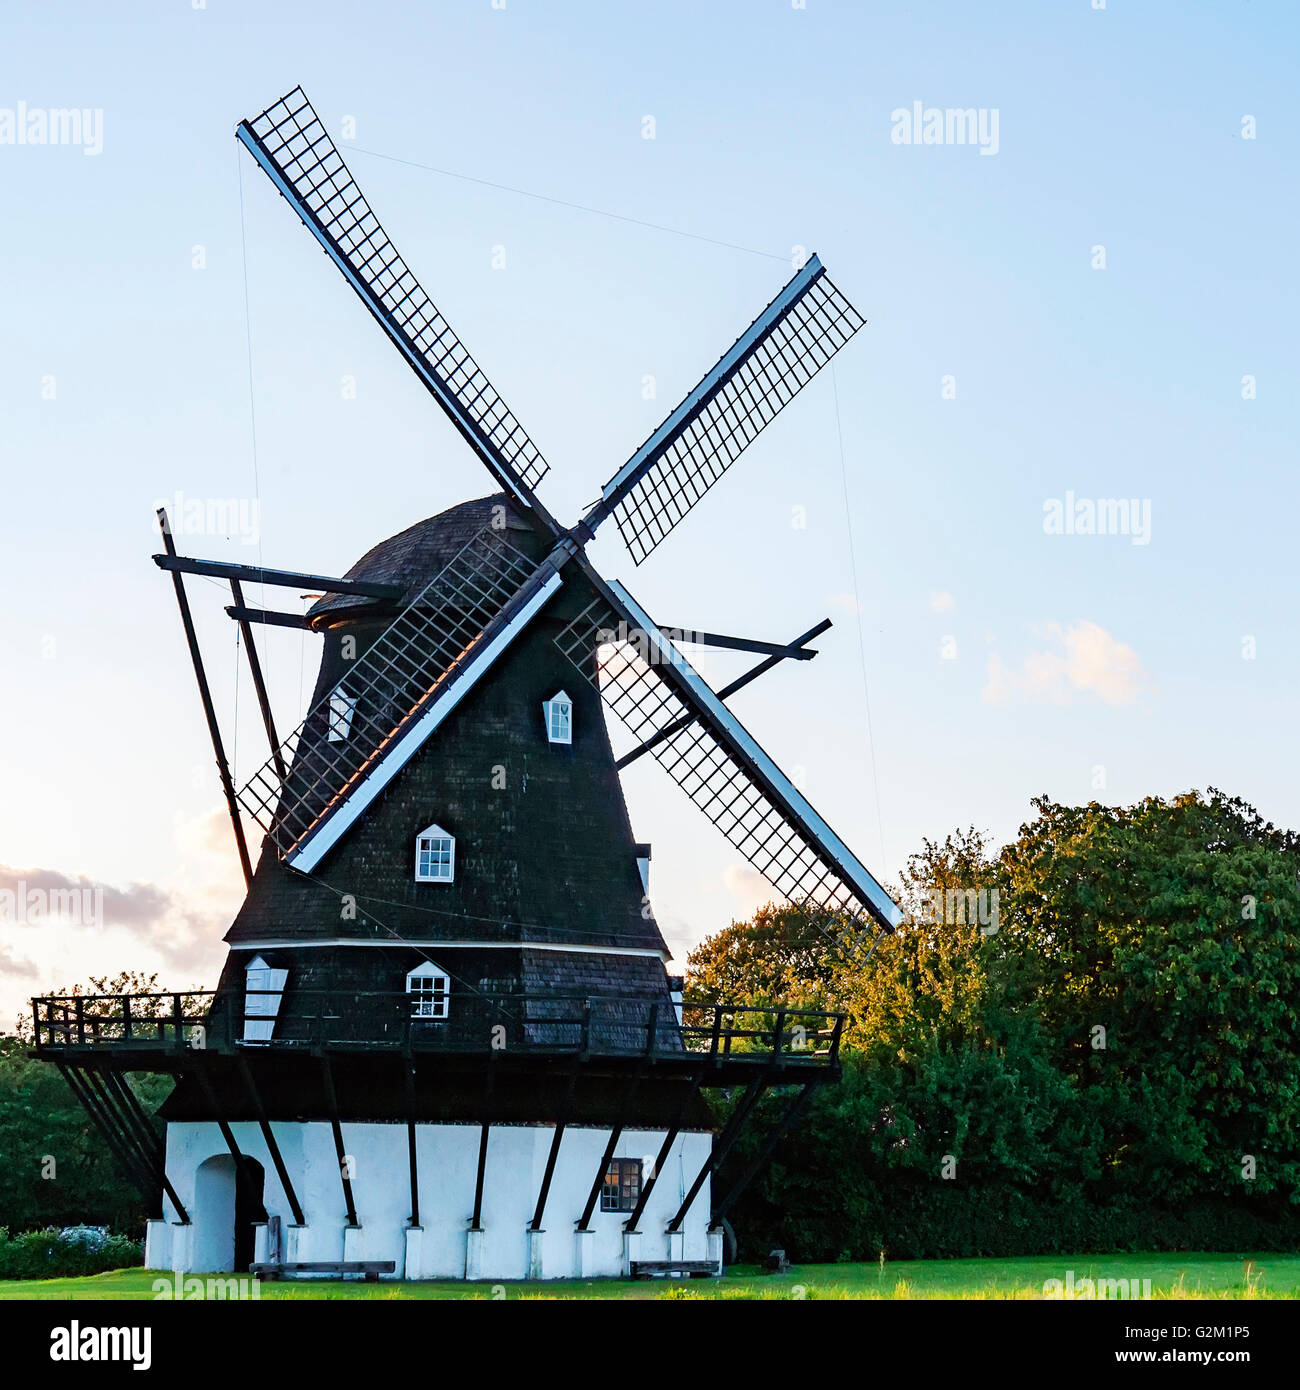 89d171577366 Image of a traditional type of windmill. Helsingborg, Sweden Stock ...